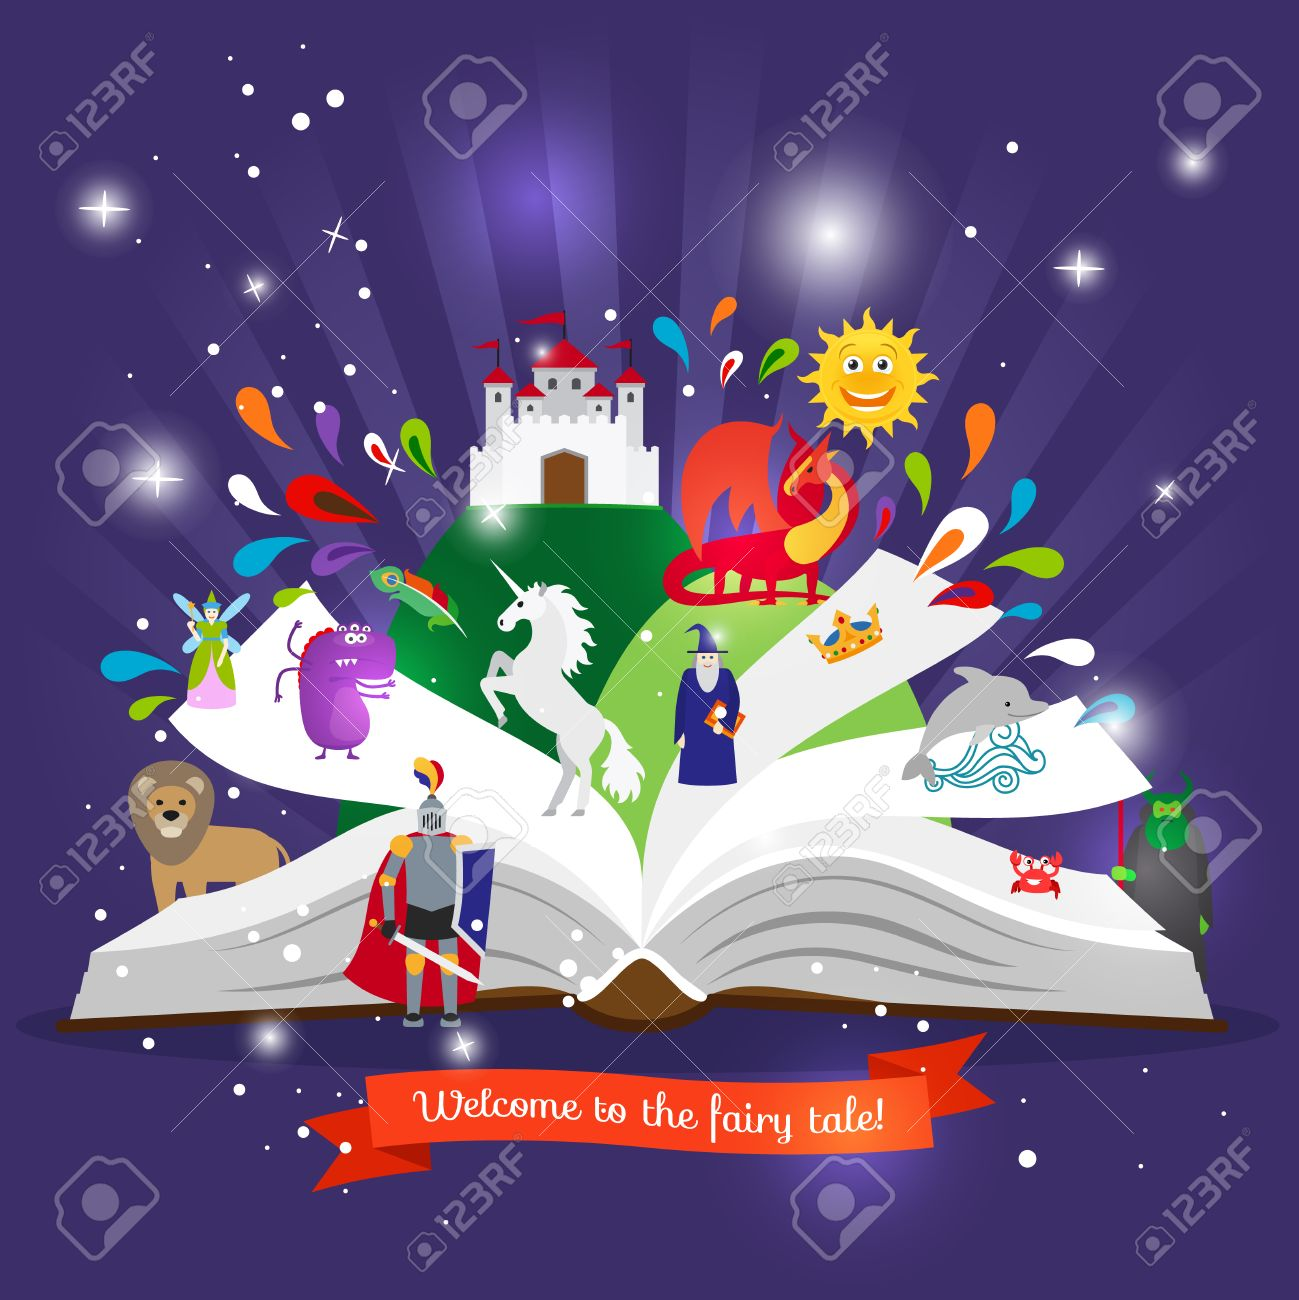 Fairy tale book. Open book with cartoon fairy tales characters vector illustration - 61832965